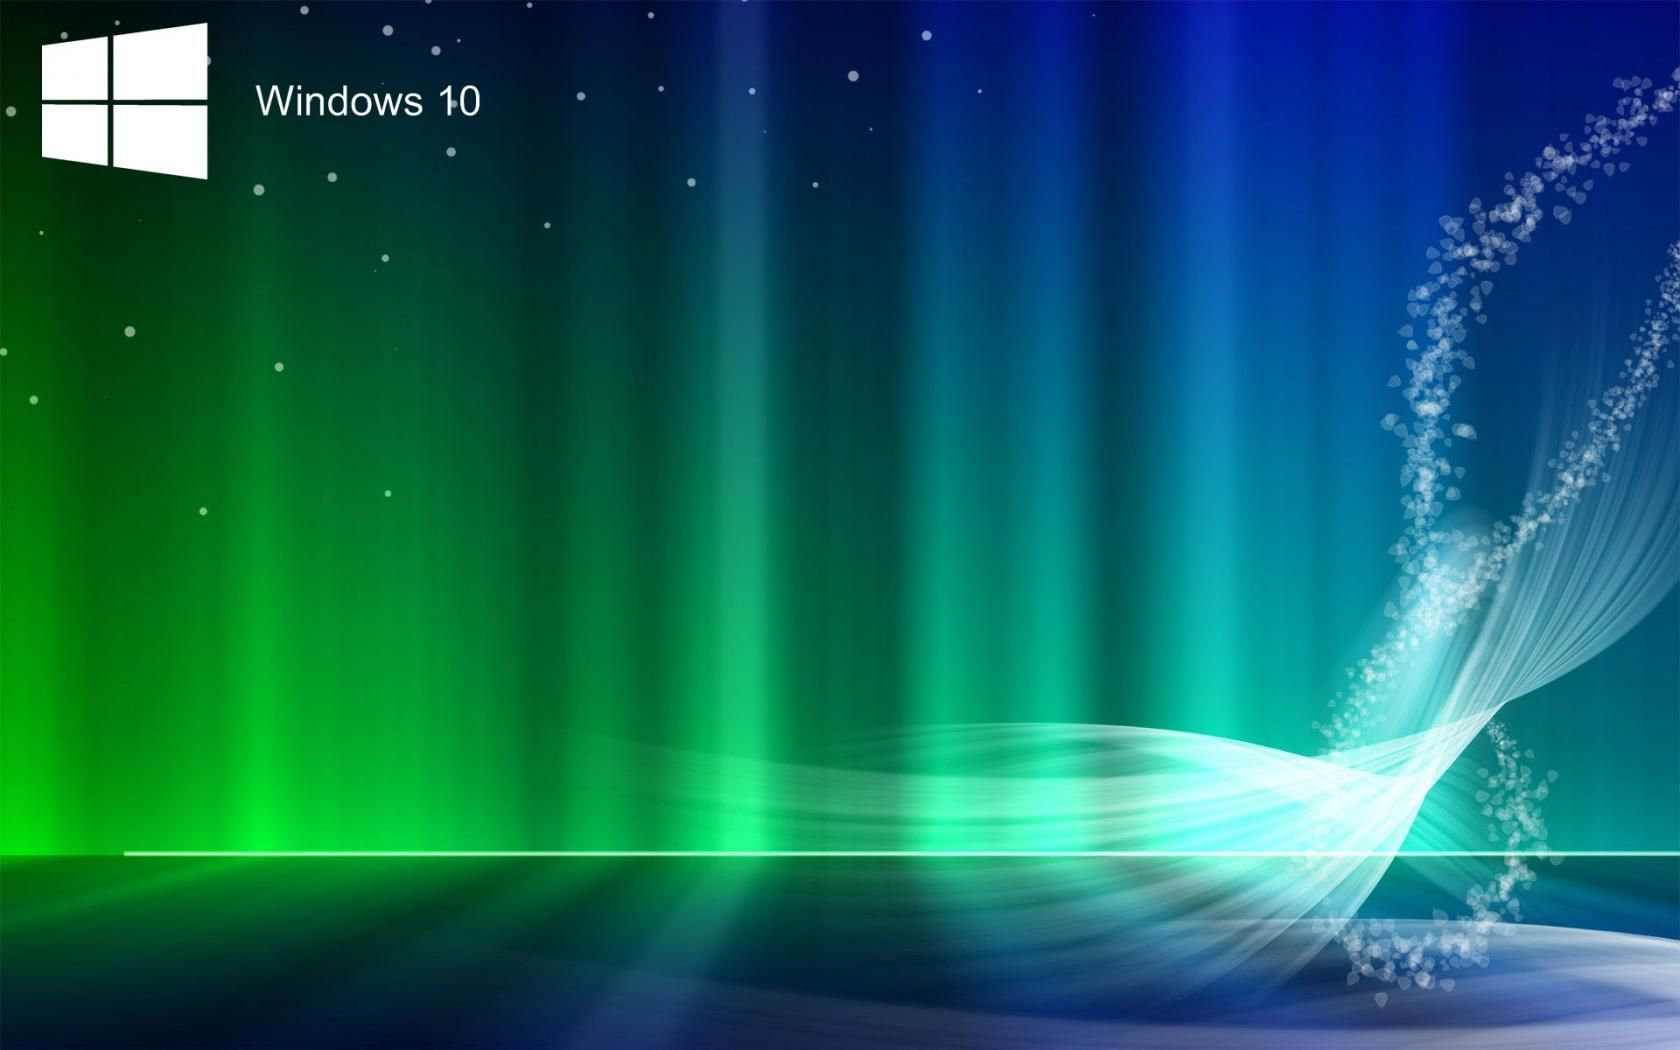 Windows 10 Wallpaper Download for Laptop Backgrounds in